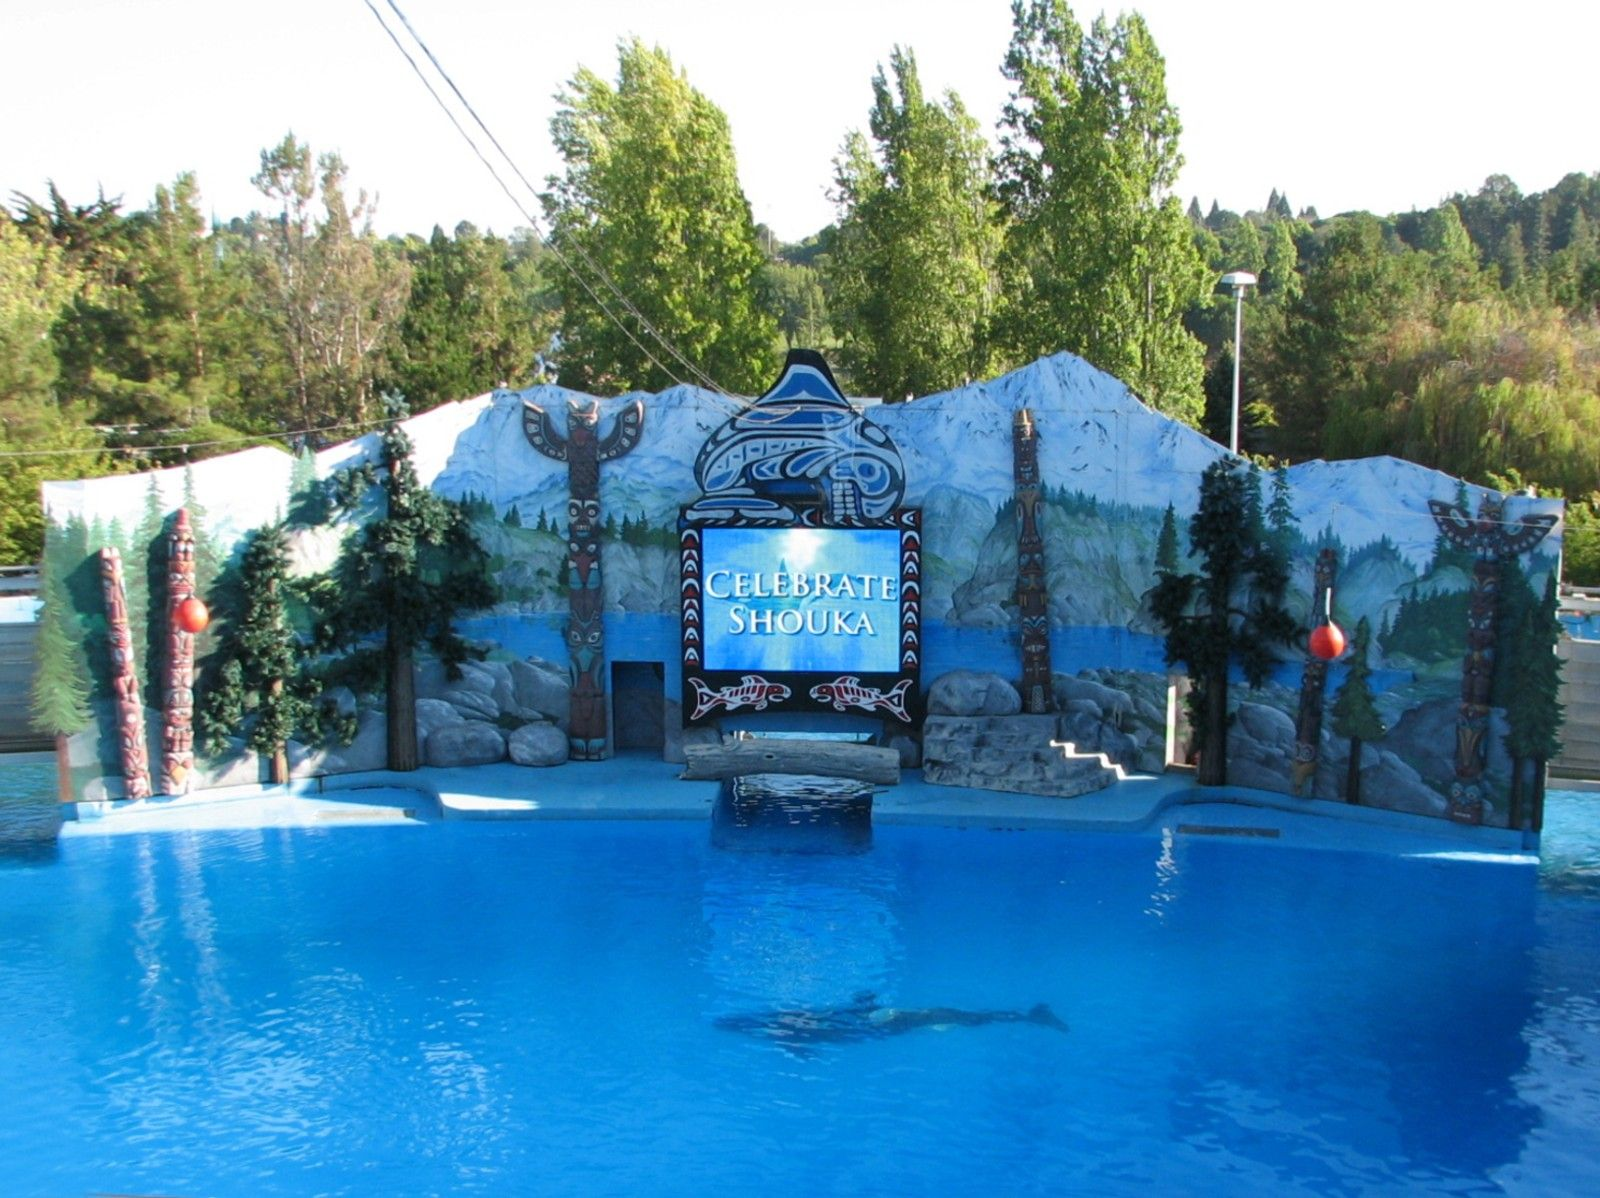 Aquariums and zoos a photo thread page 4 for Pool show discovery